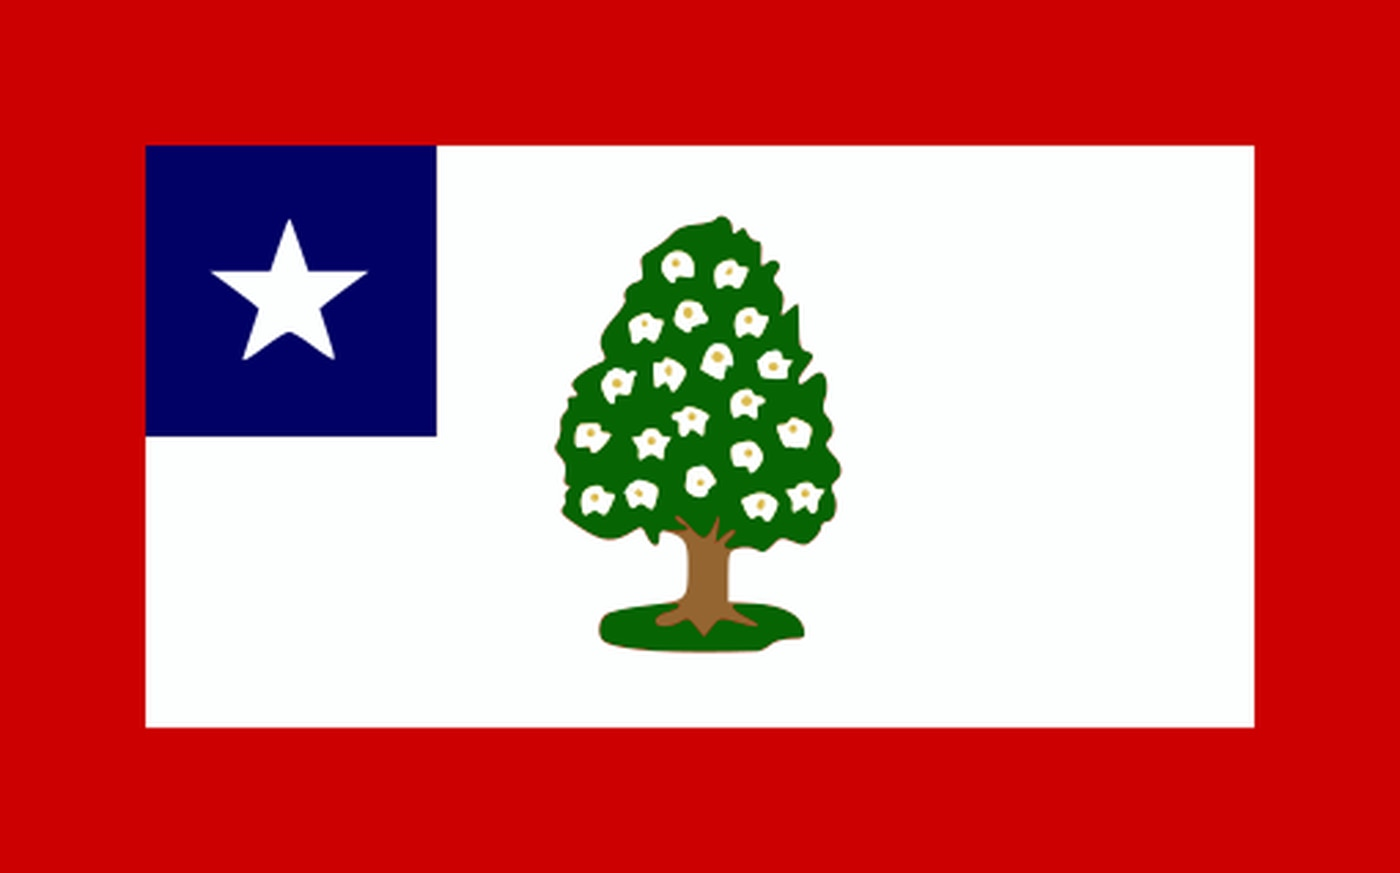 The Magnolia Flag was the first official state flag of Mississippi, flying from March 30, 1861, until August 22, 1865.